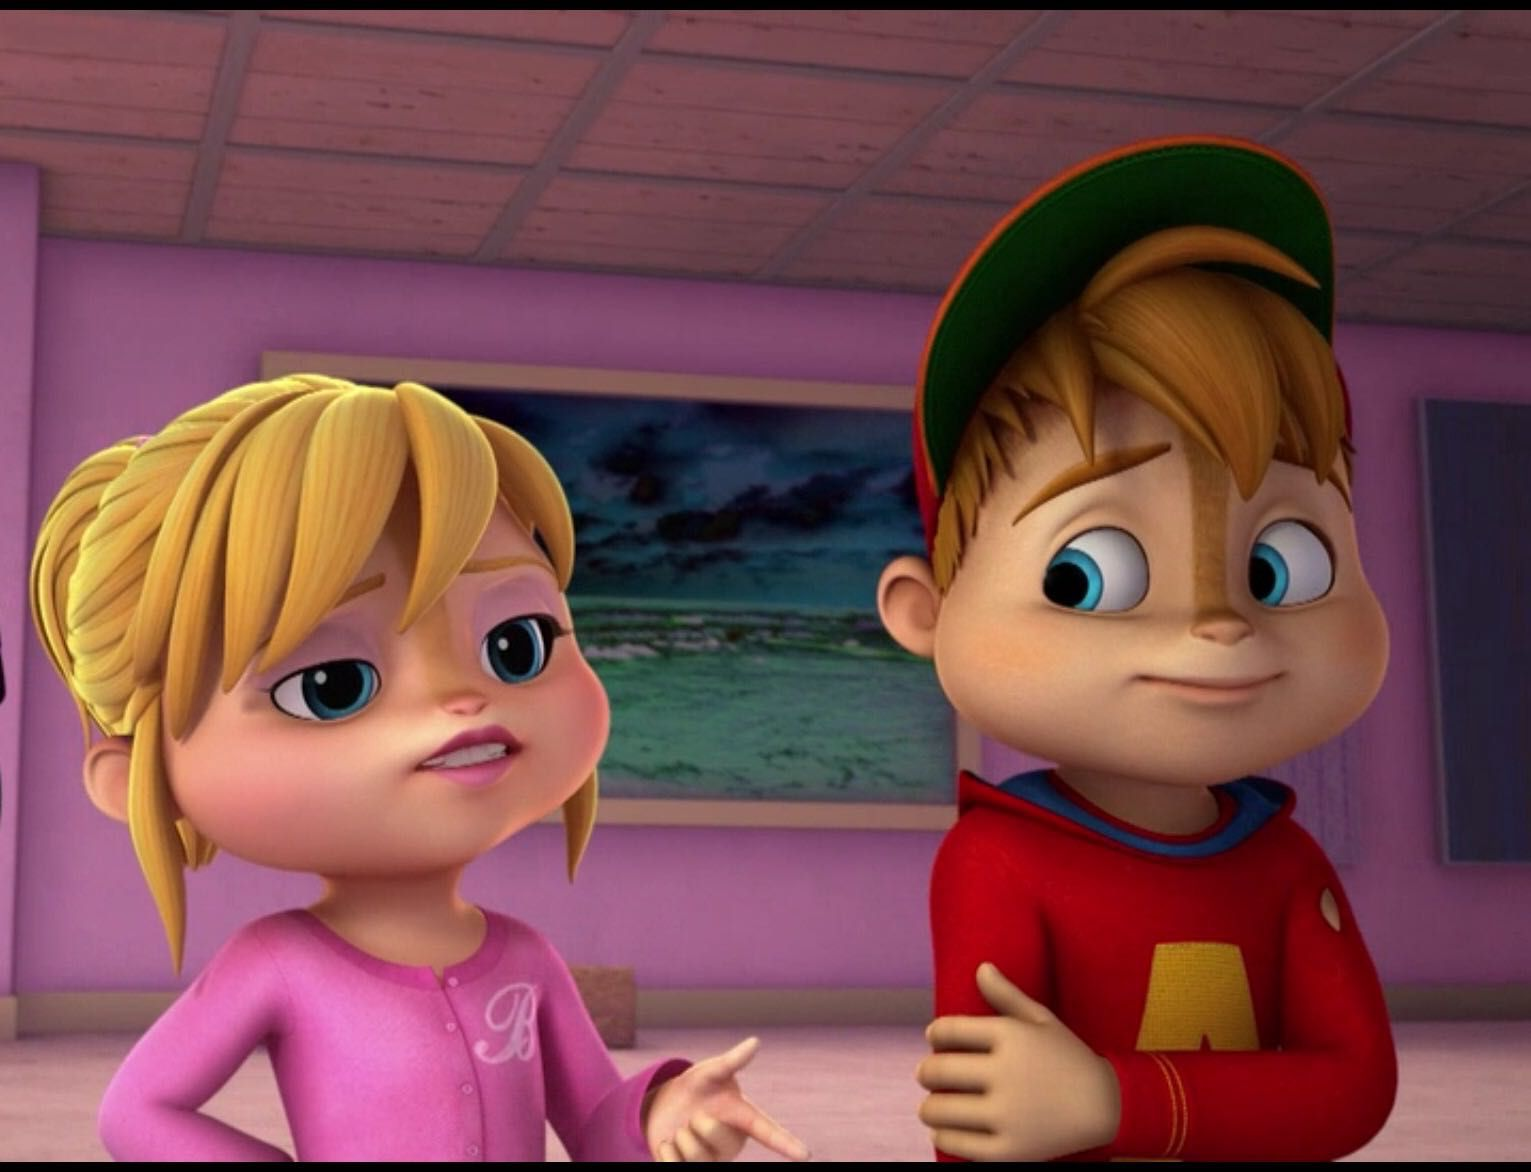 Alvin And The Chipmunks Alvin And Brittany falling for you - chapter 3: simon and jeanette's plan